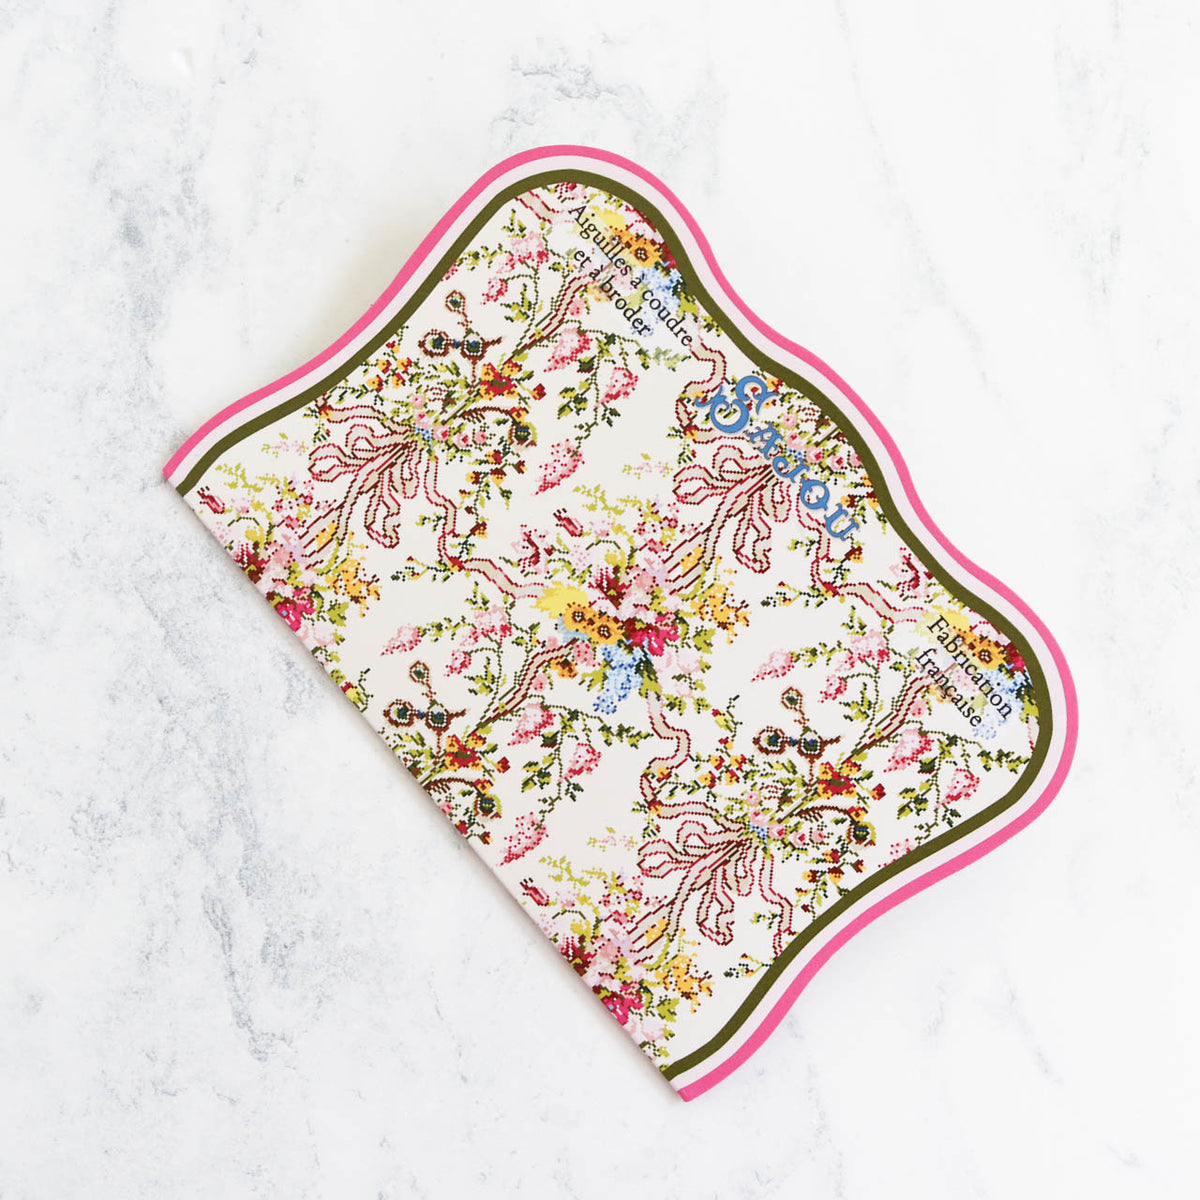 French Embroidery and Tapestry Needle Book - Versailles